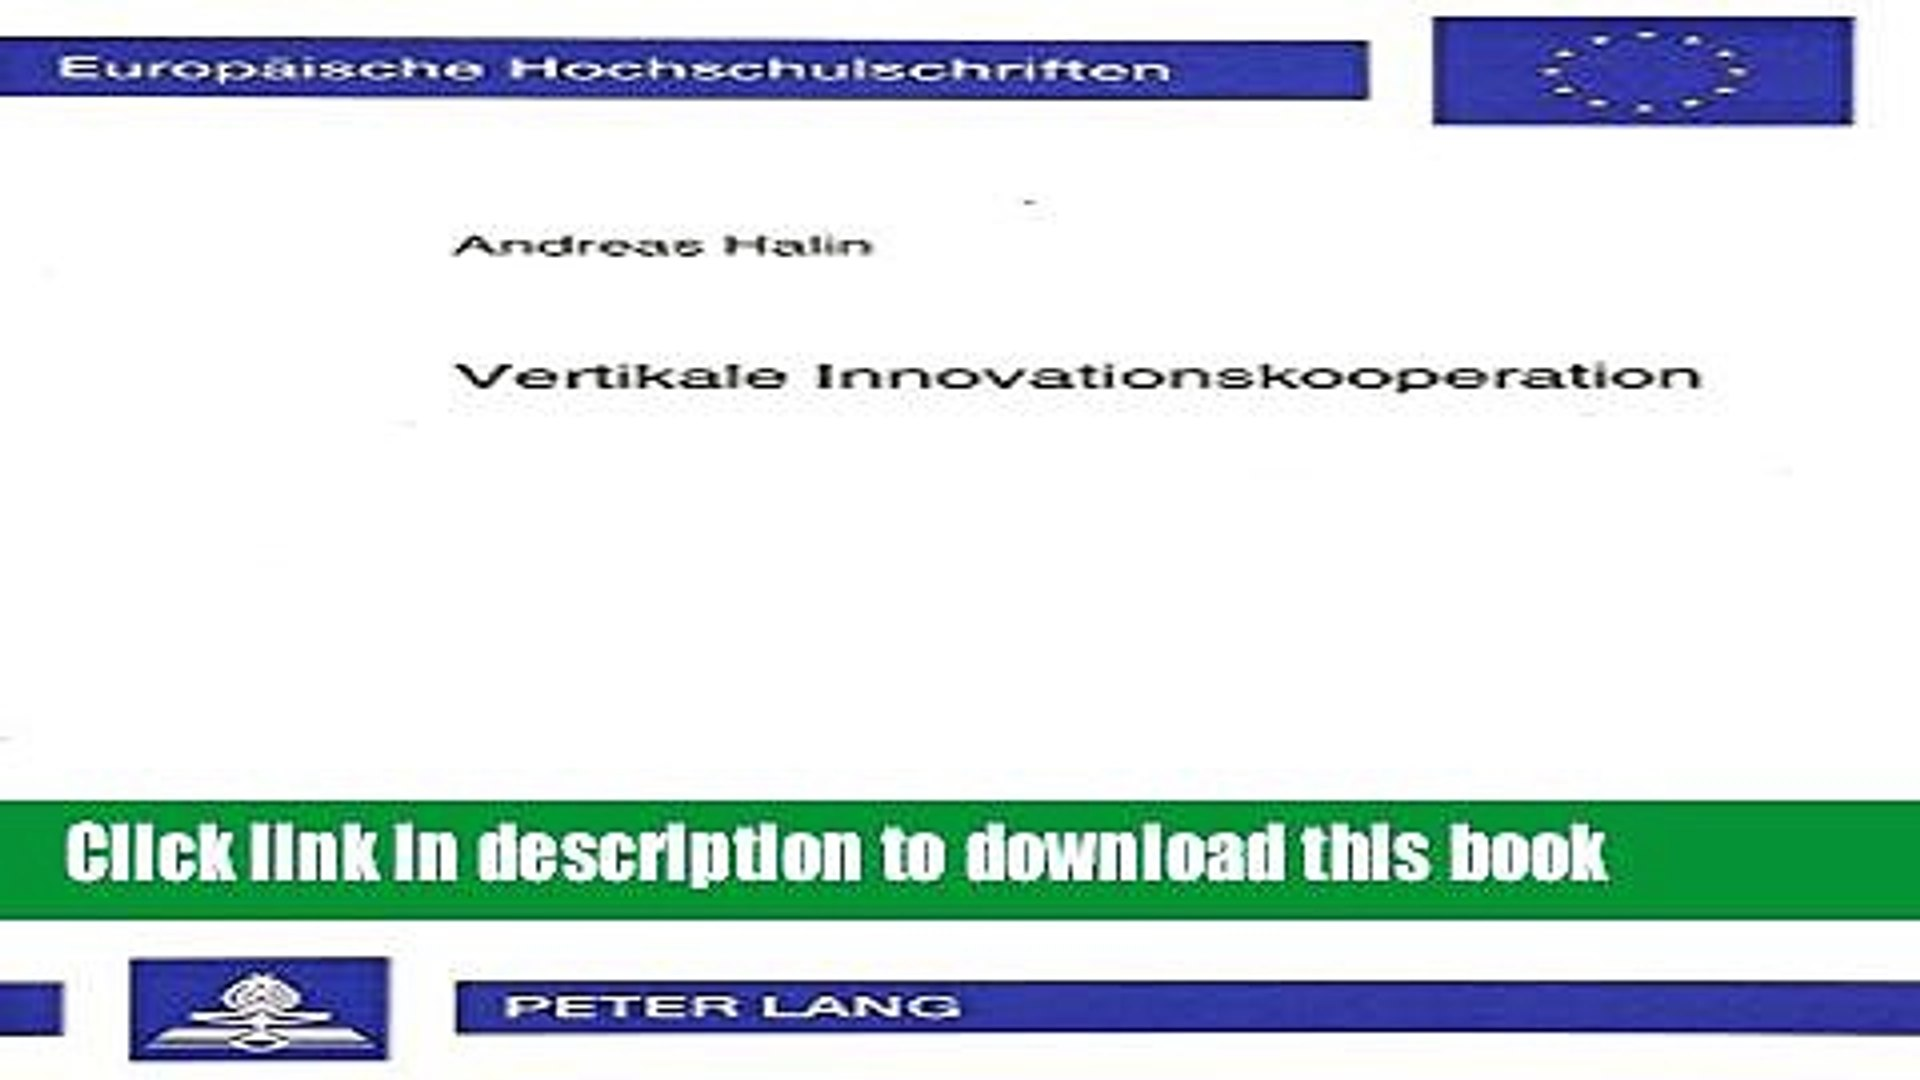 [Read  e-Book PDF] Vertikale Innovationskooperation: Eine transaktionskostentheoretische Analyse